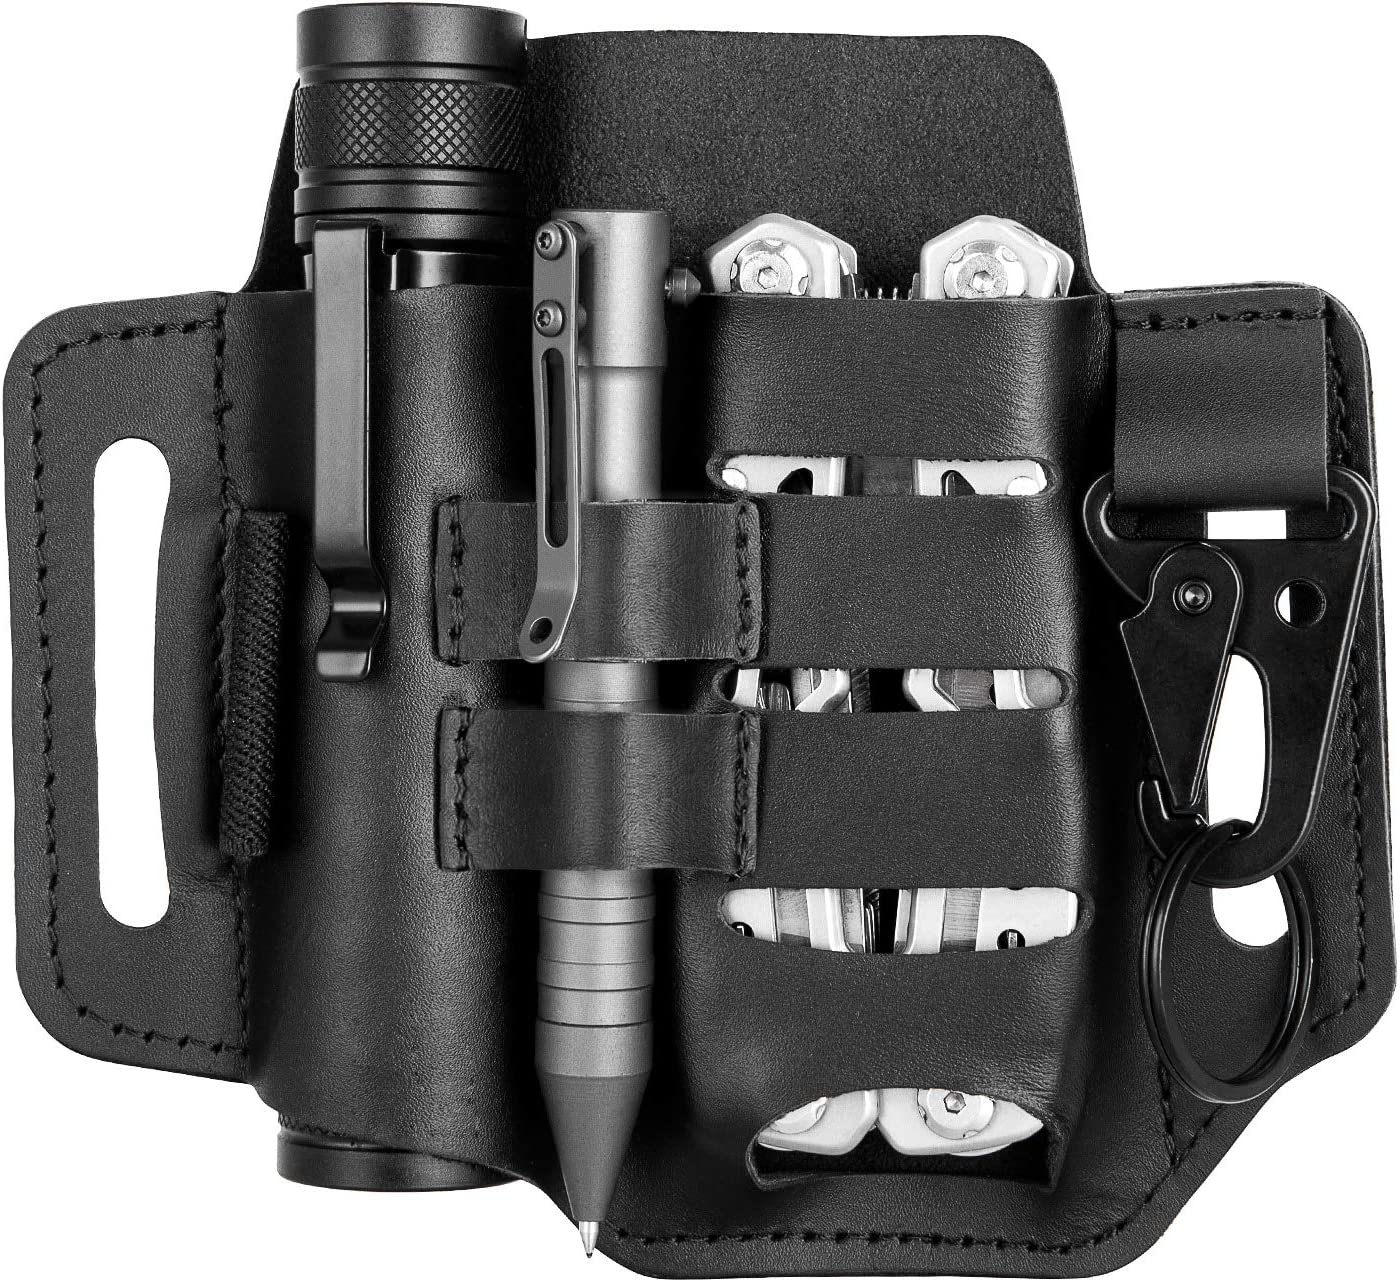 Multitool Sheath for Belt,Leather Multitool Pouch,EDC Pocket Organizer with Key Holder,EDC Leather Pouch,Leather Knife Sheaths Flashlight Holster (Black)